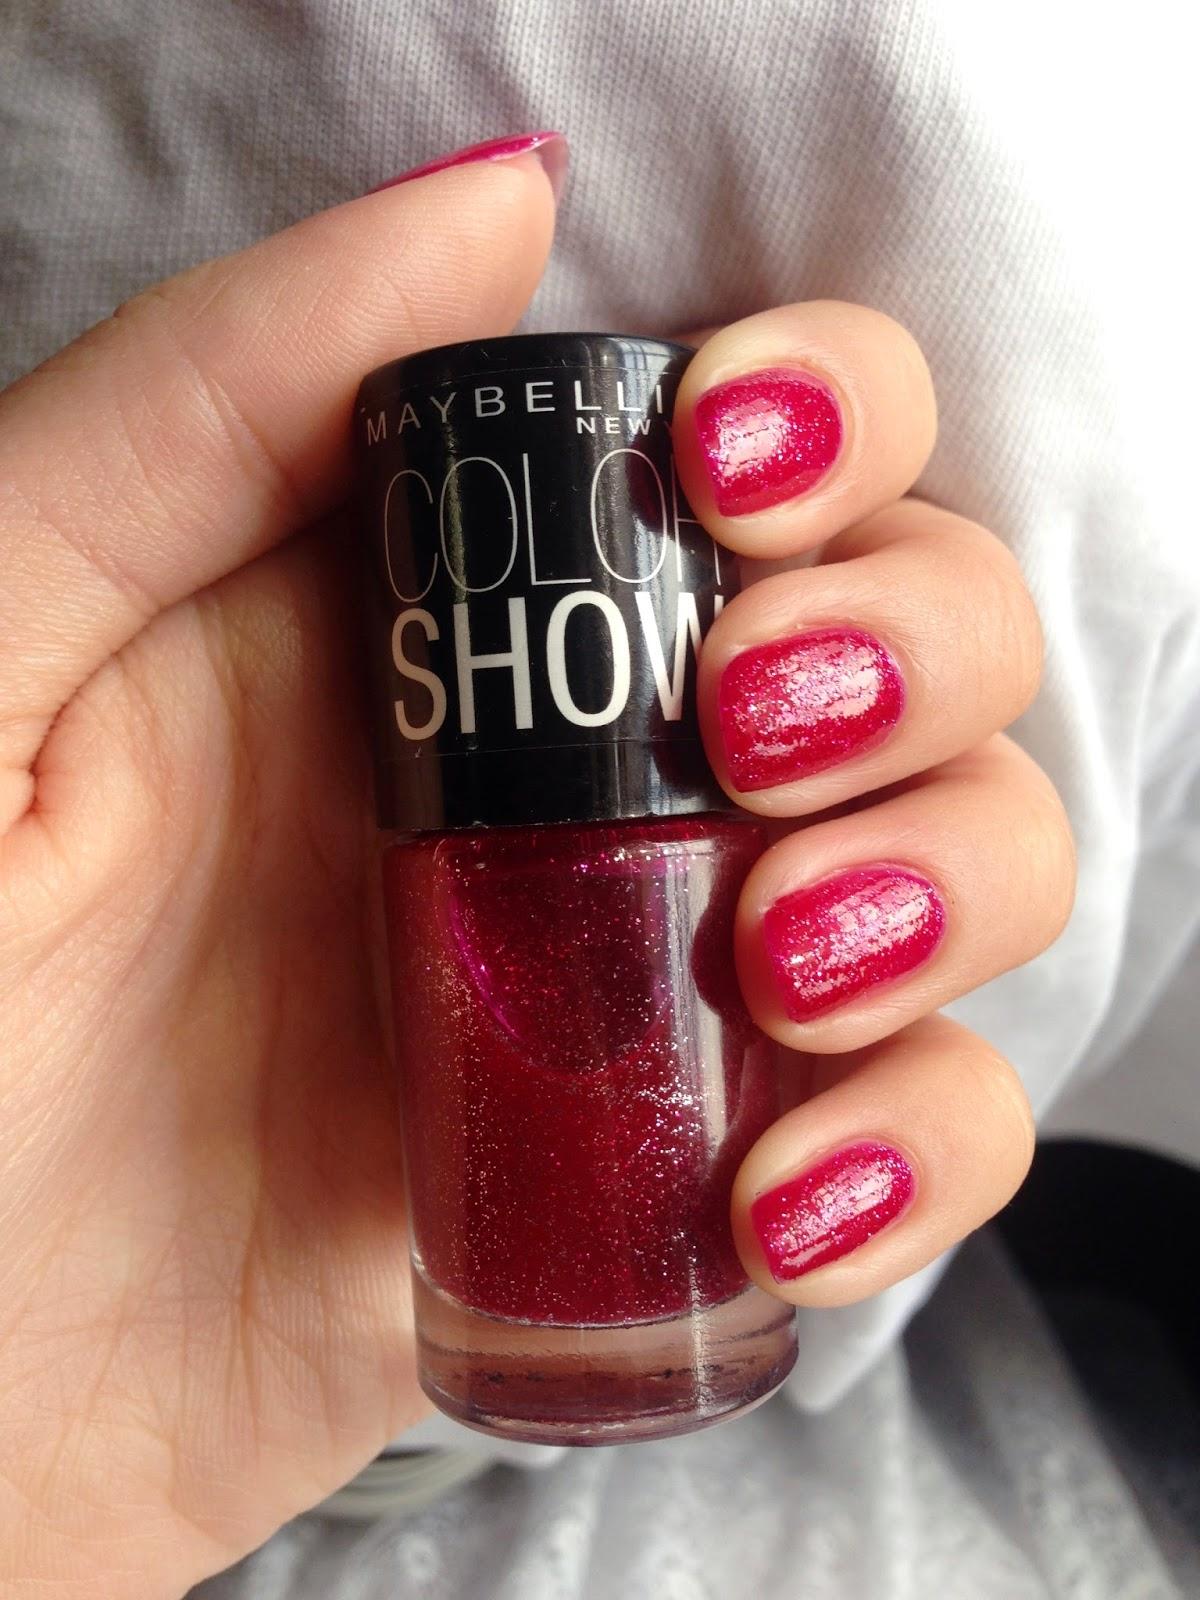 Maybelline Color Show Nail Polishes (II) | H A L F I N C H N A I L S